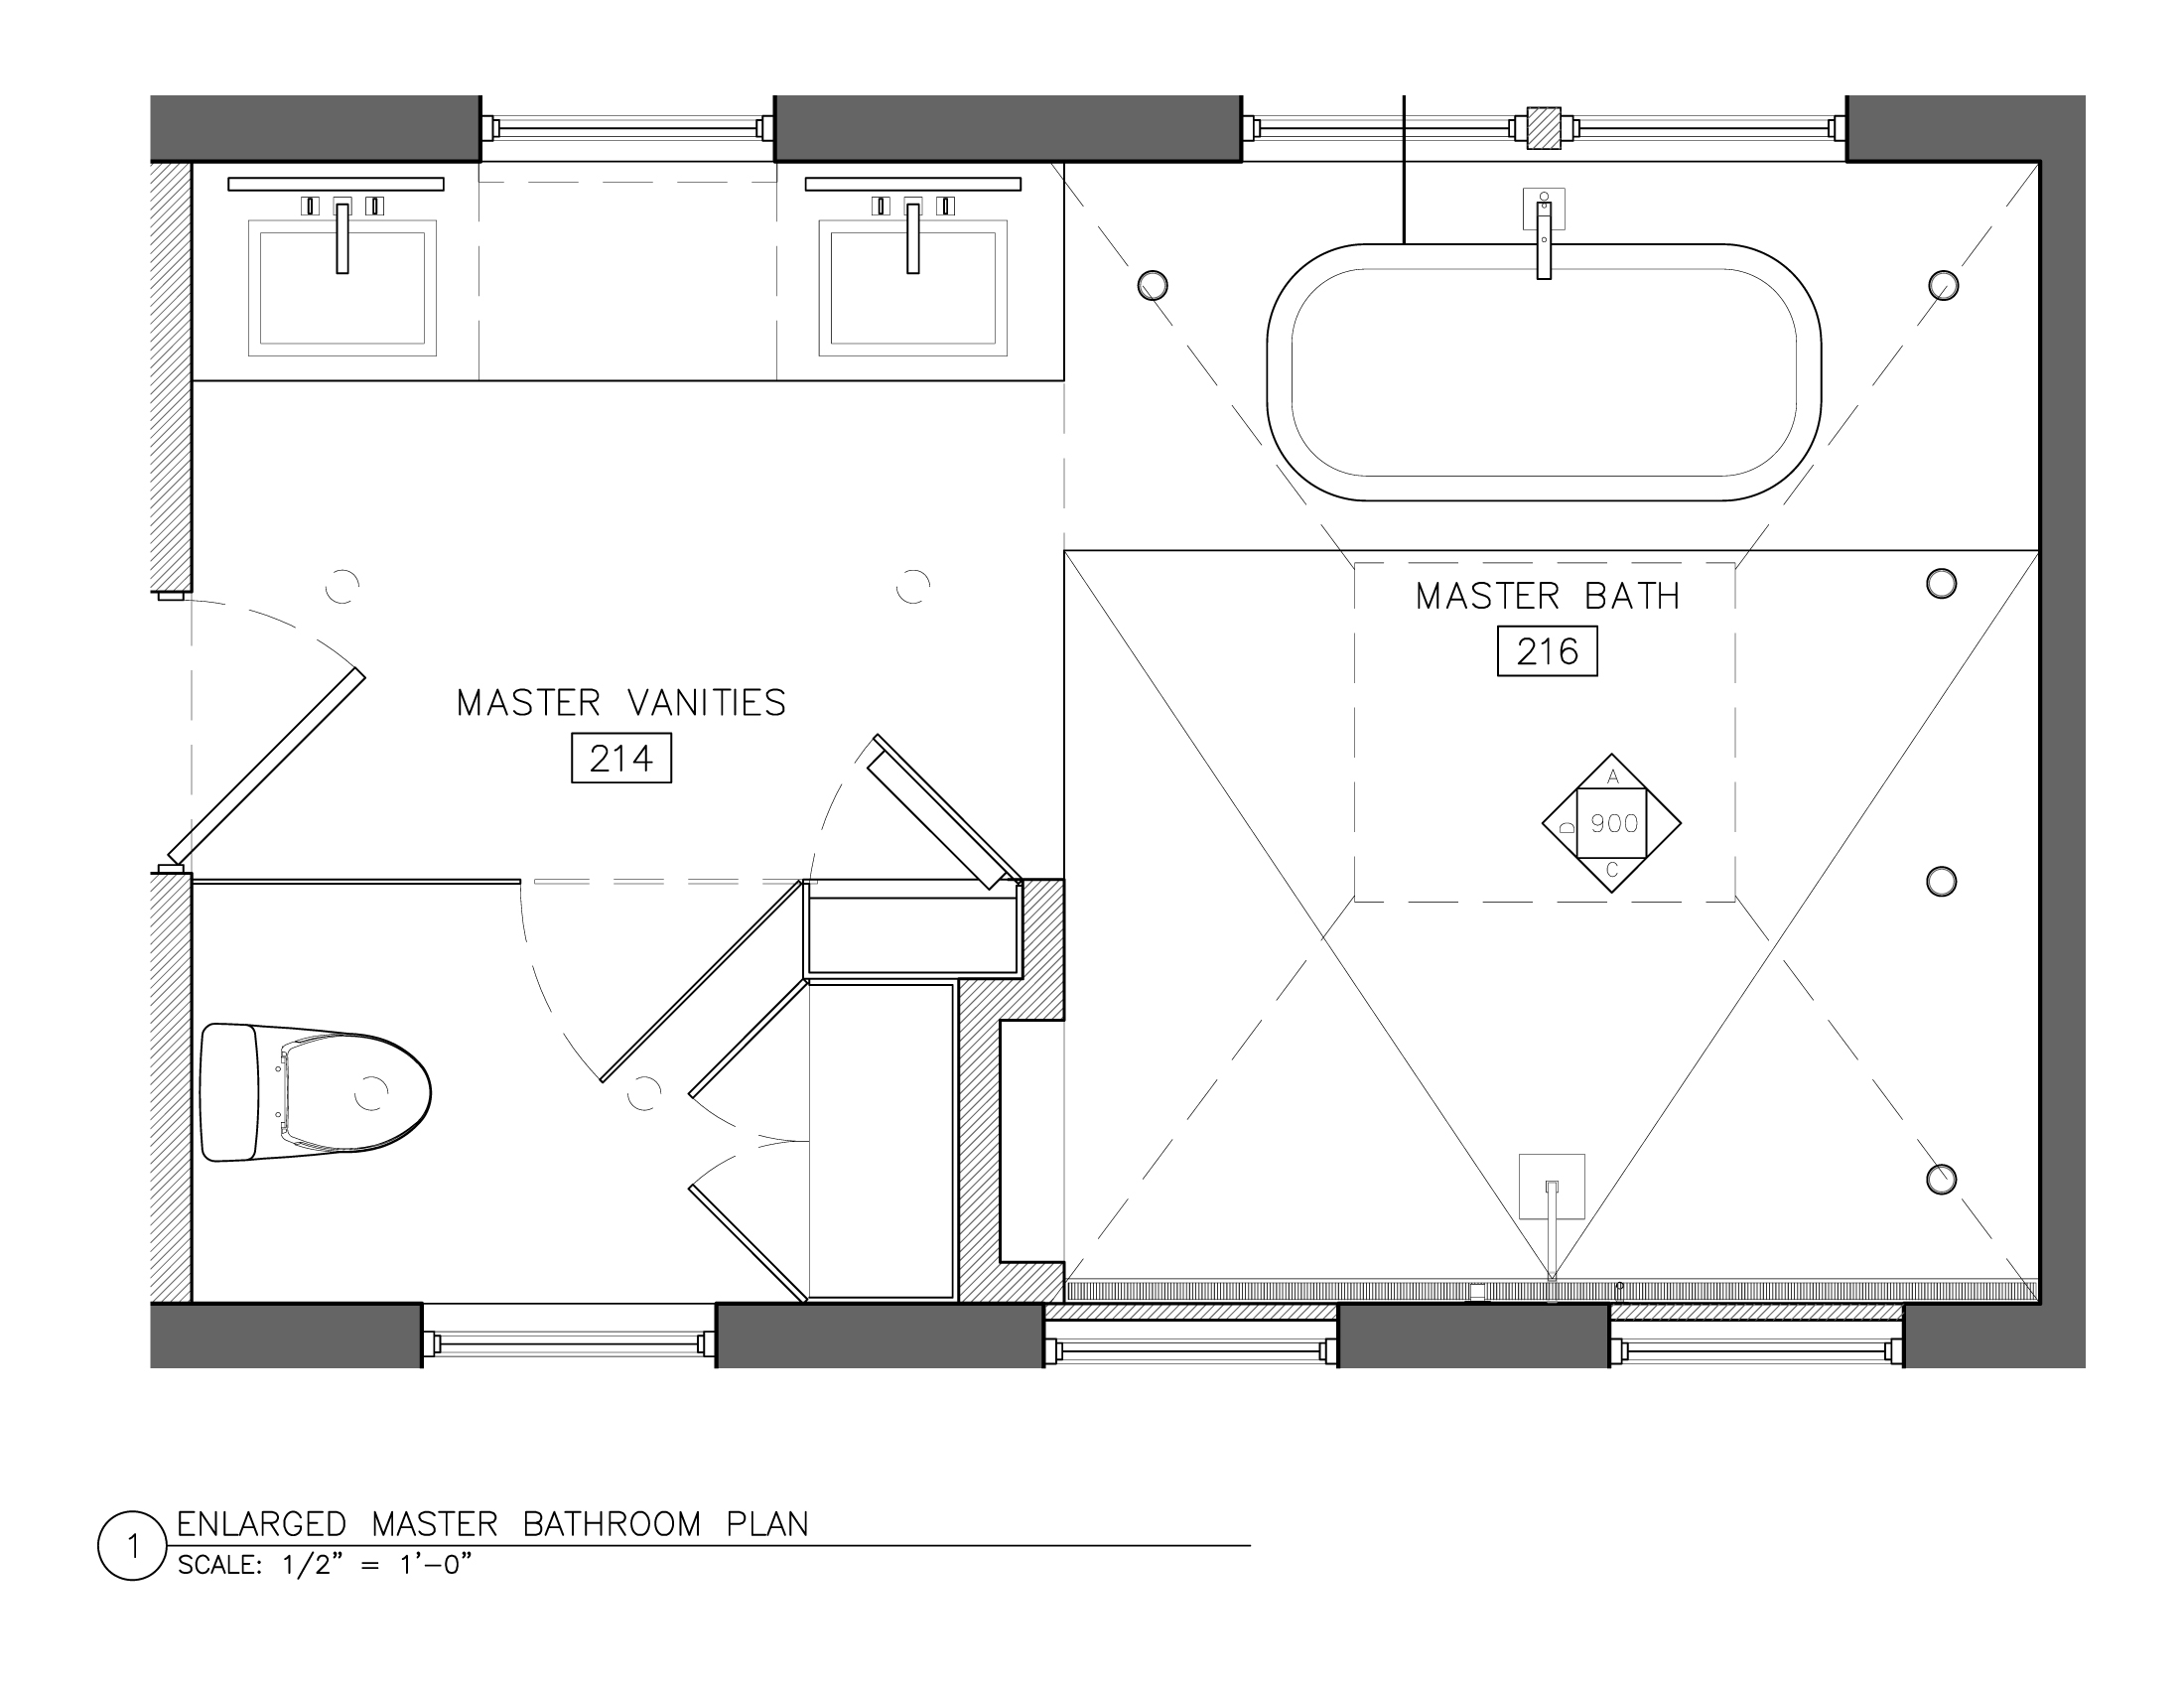 White master bath best layout room for Blueprint drawing program